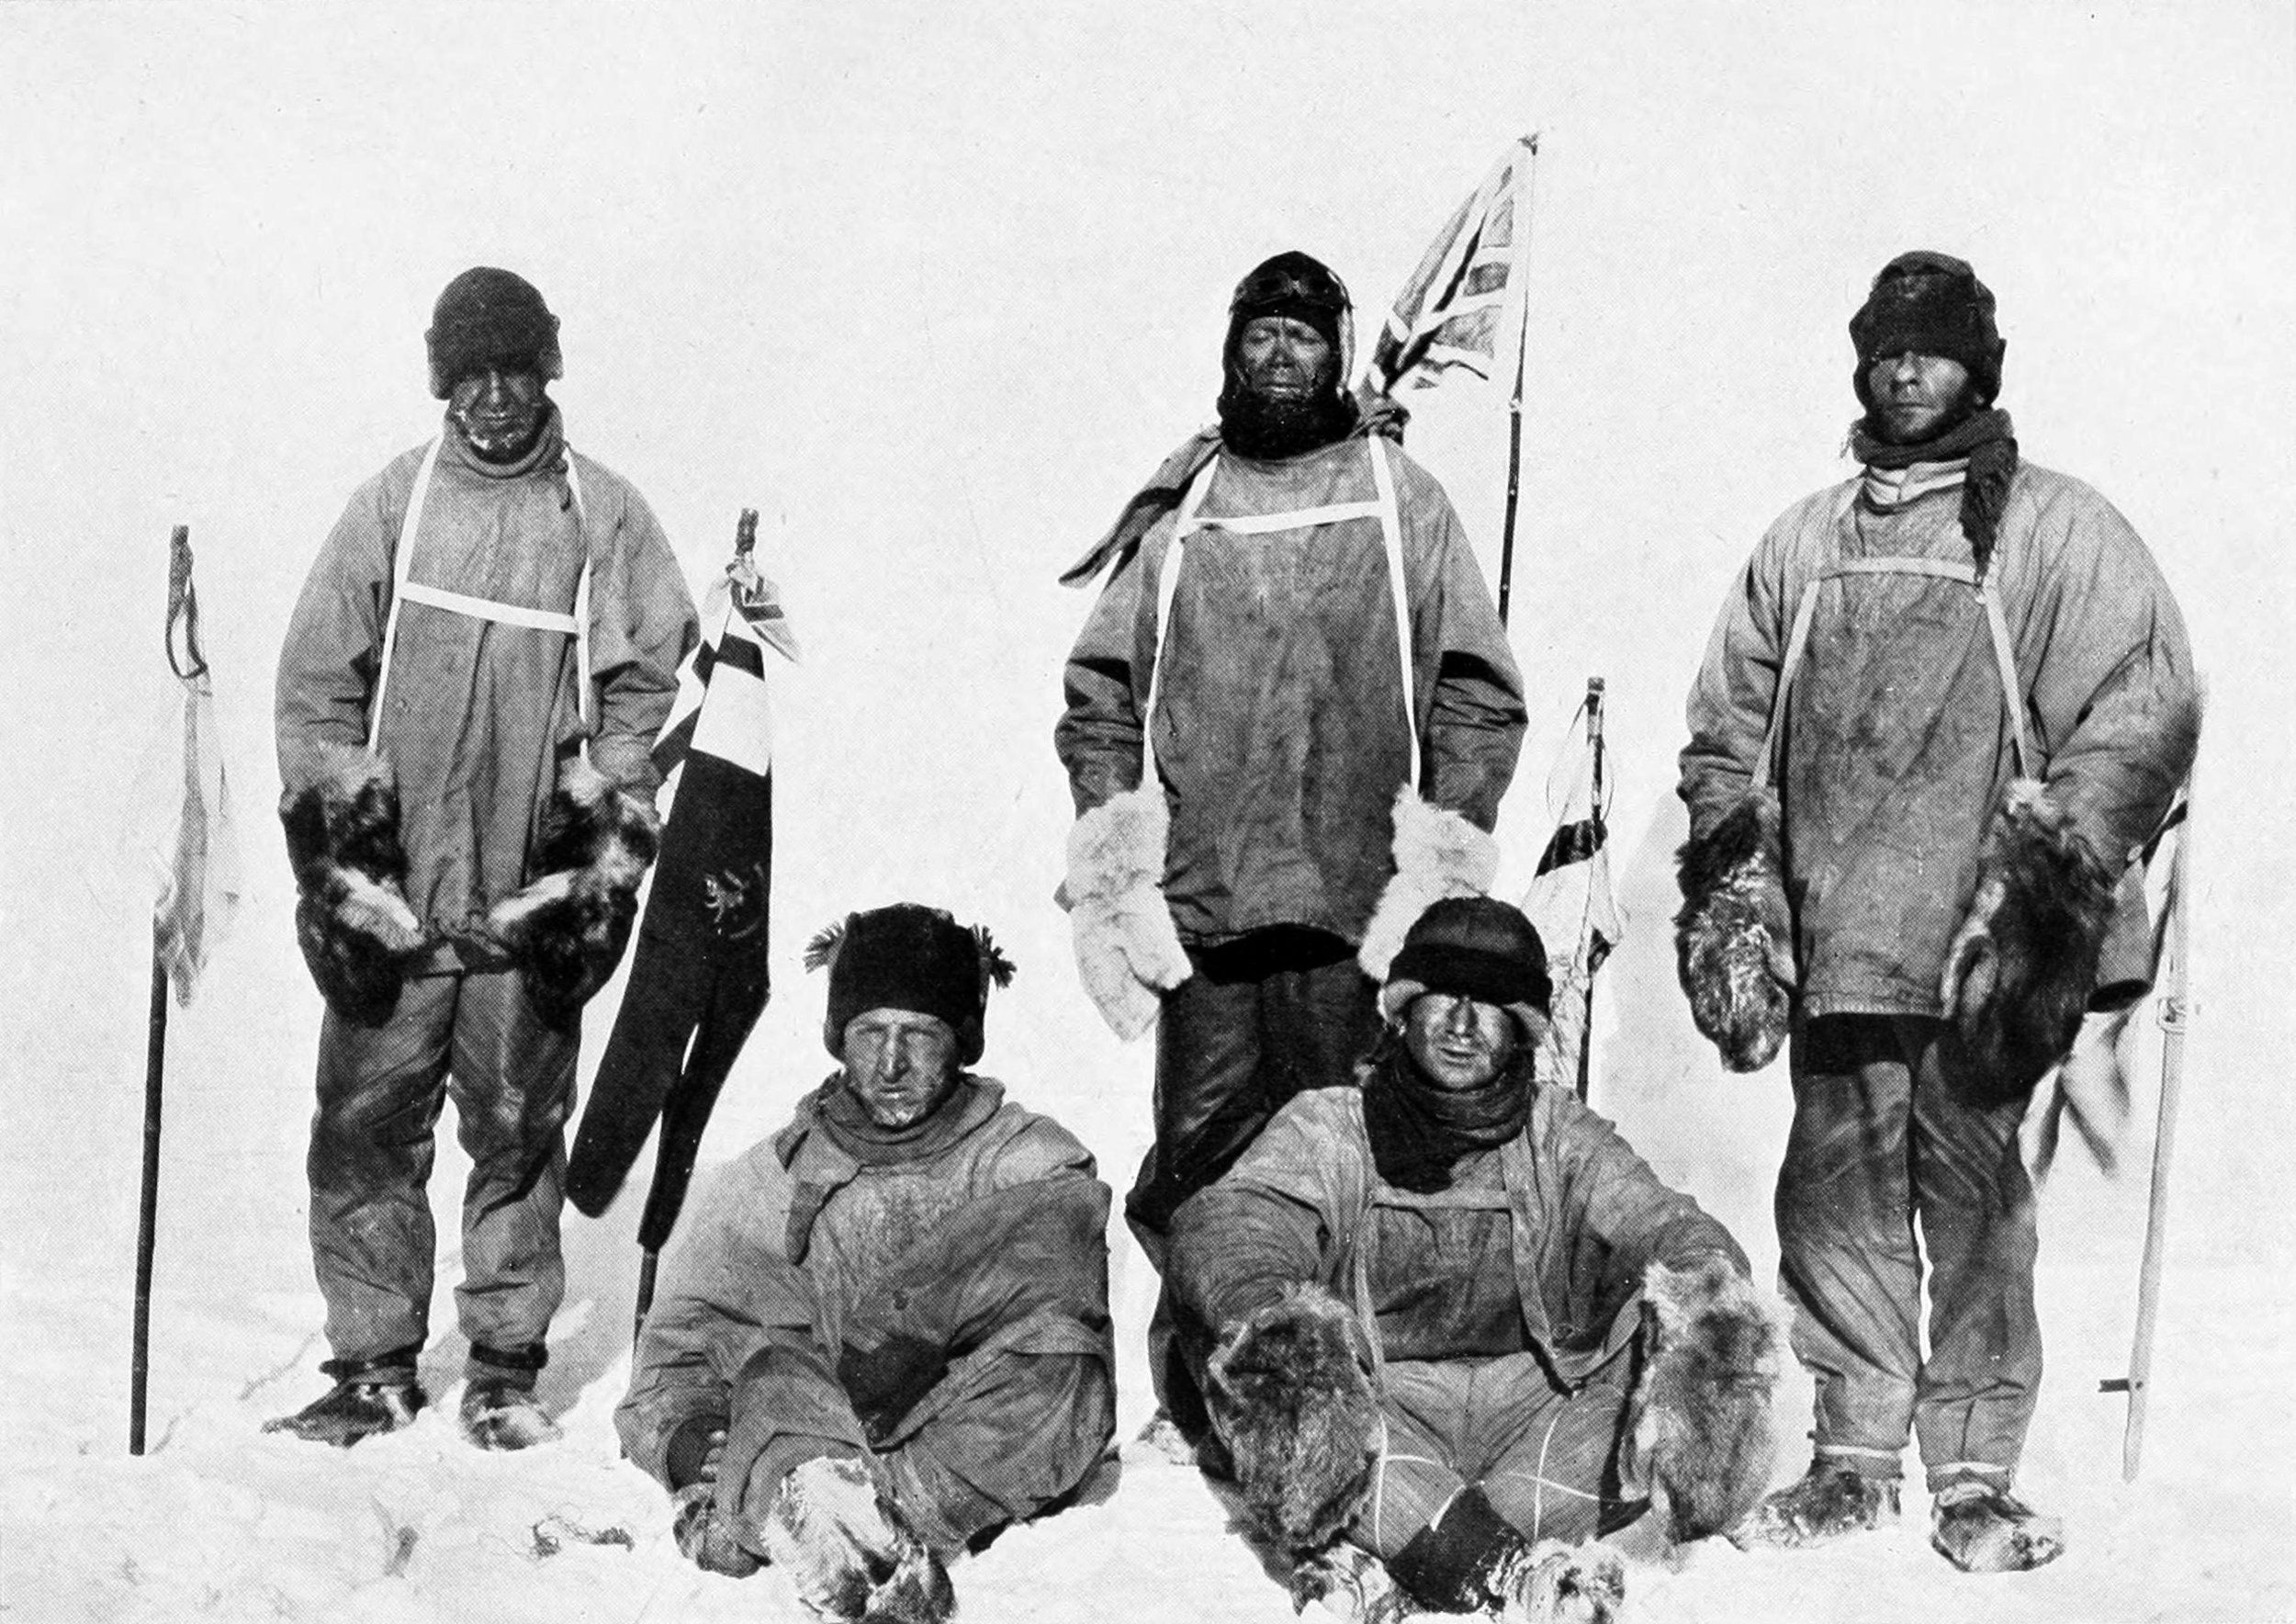 Scotts_party_at_the_South_Pole.jpg